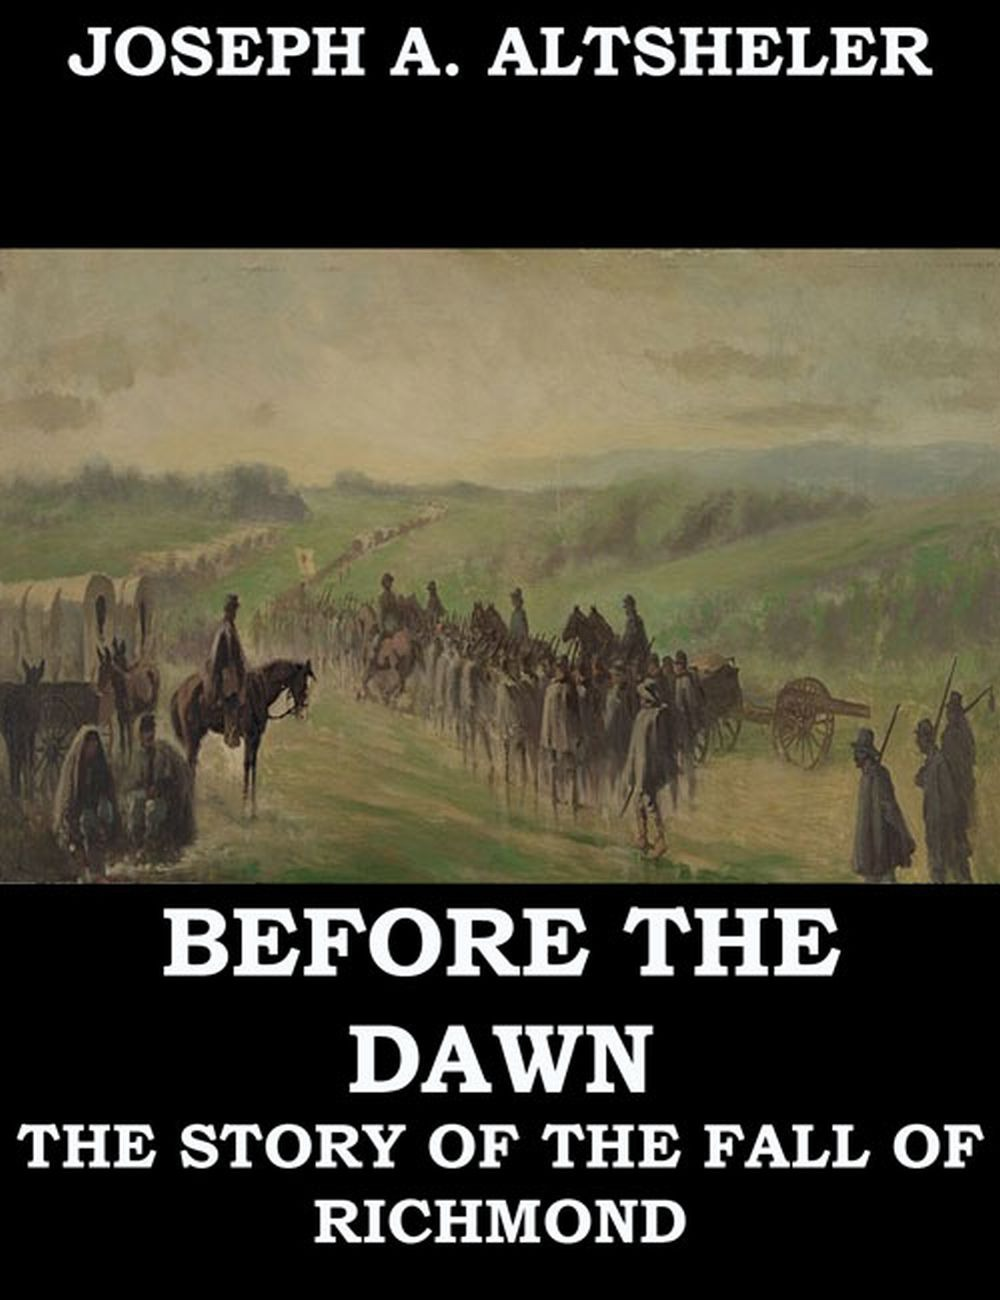 Joseph A. Altsheler Before the Dawn - A Story of the Fall of Richmond